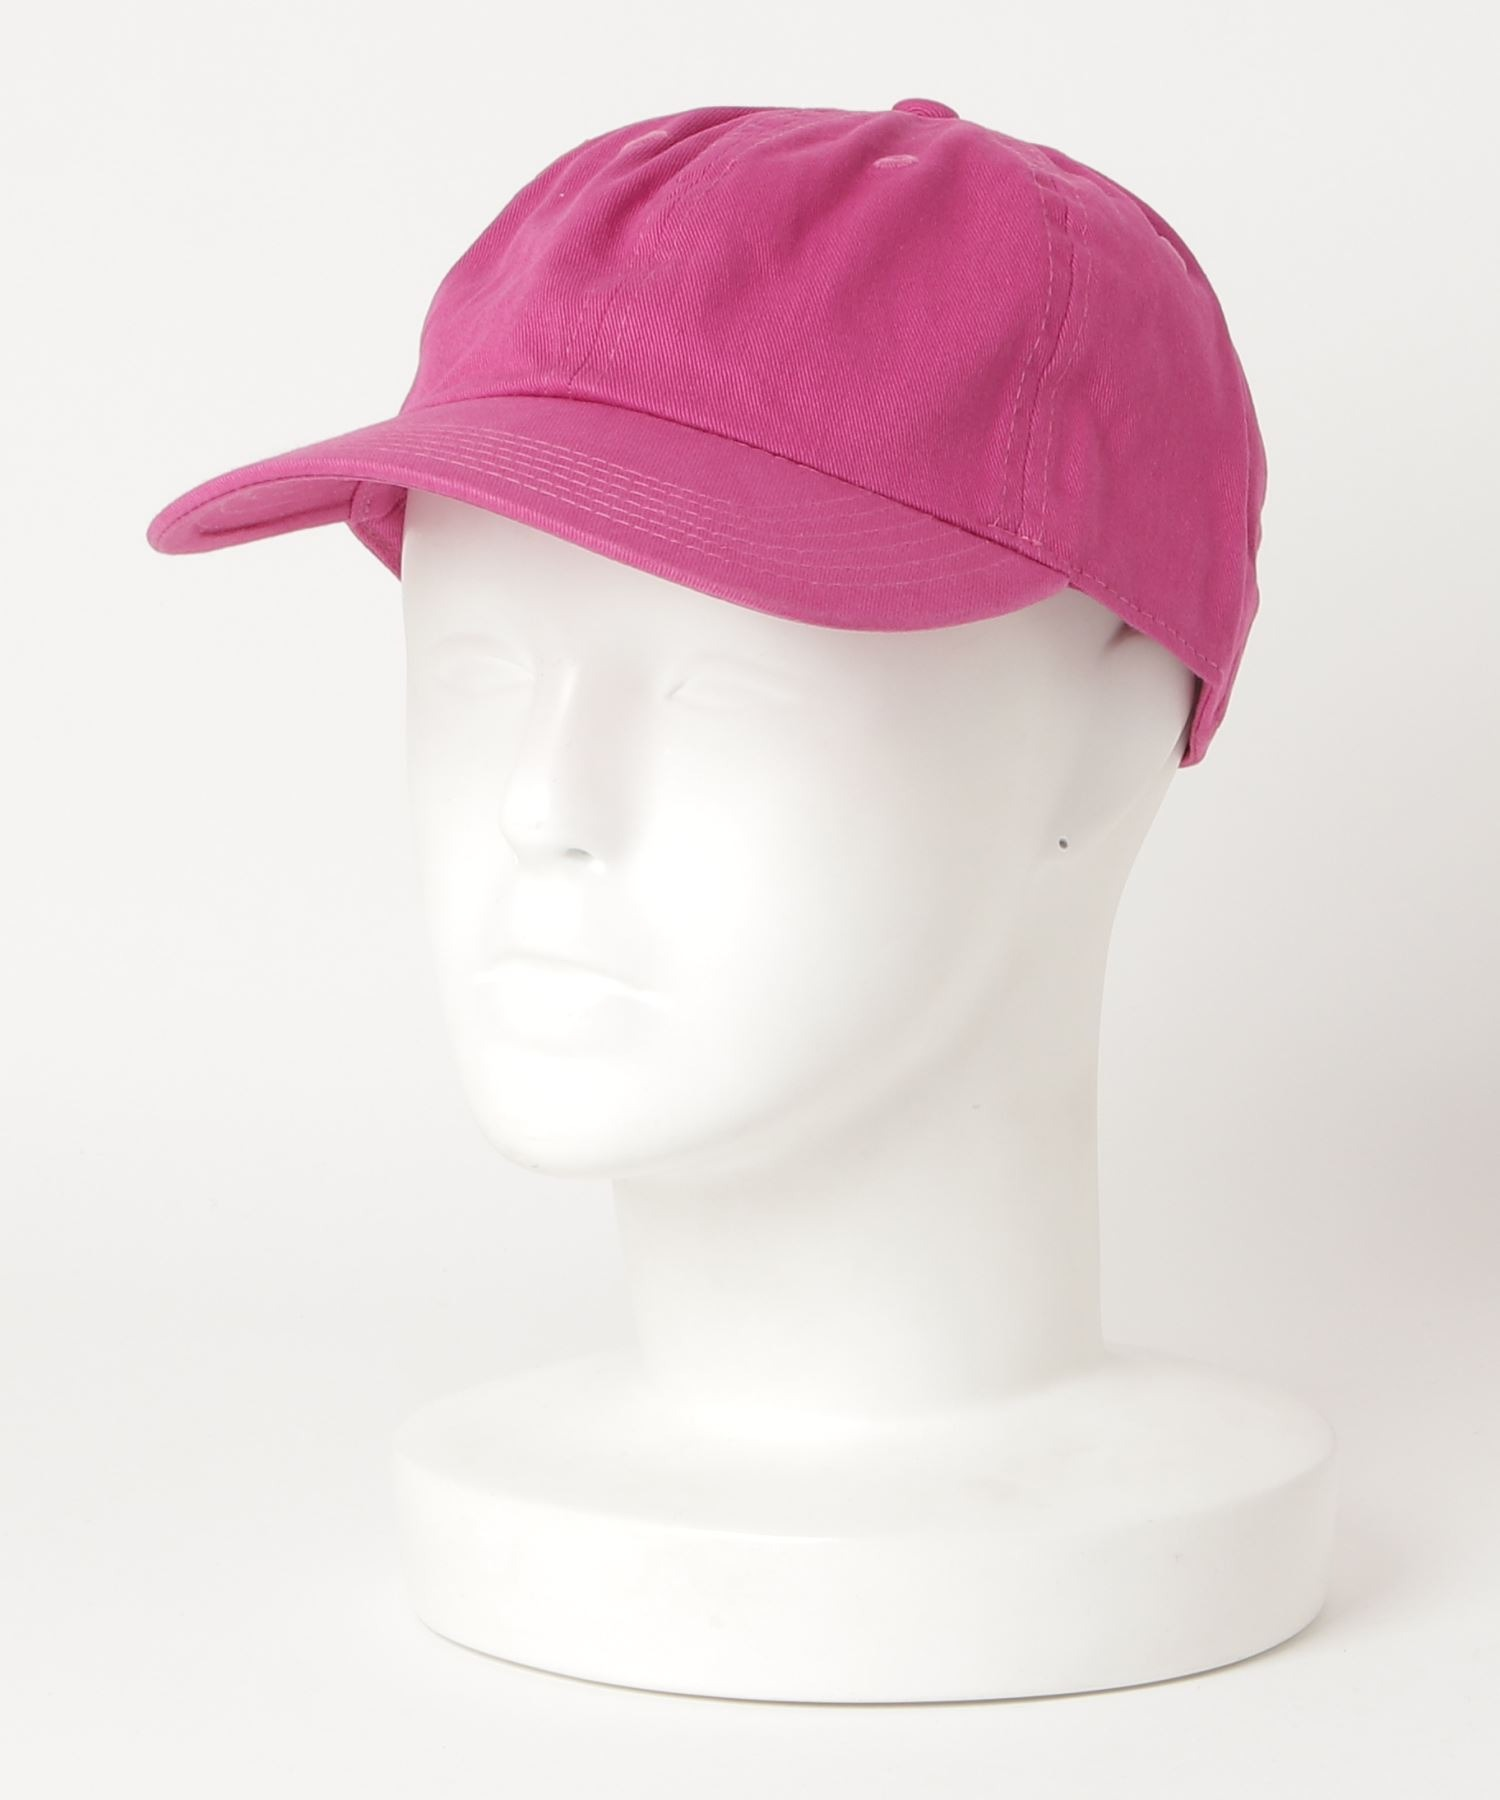 【newhattan】 ニューハッタン キャップ STONE WASHED CAP